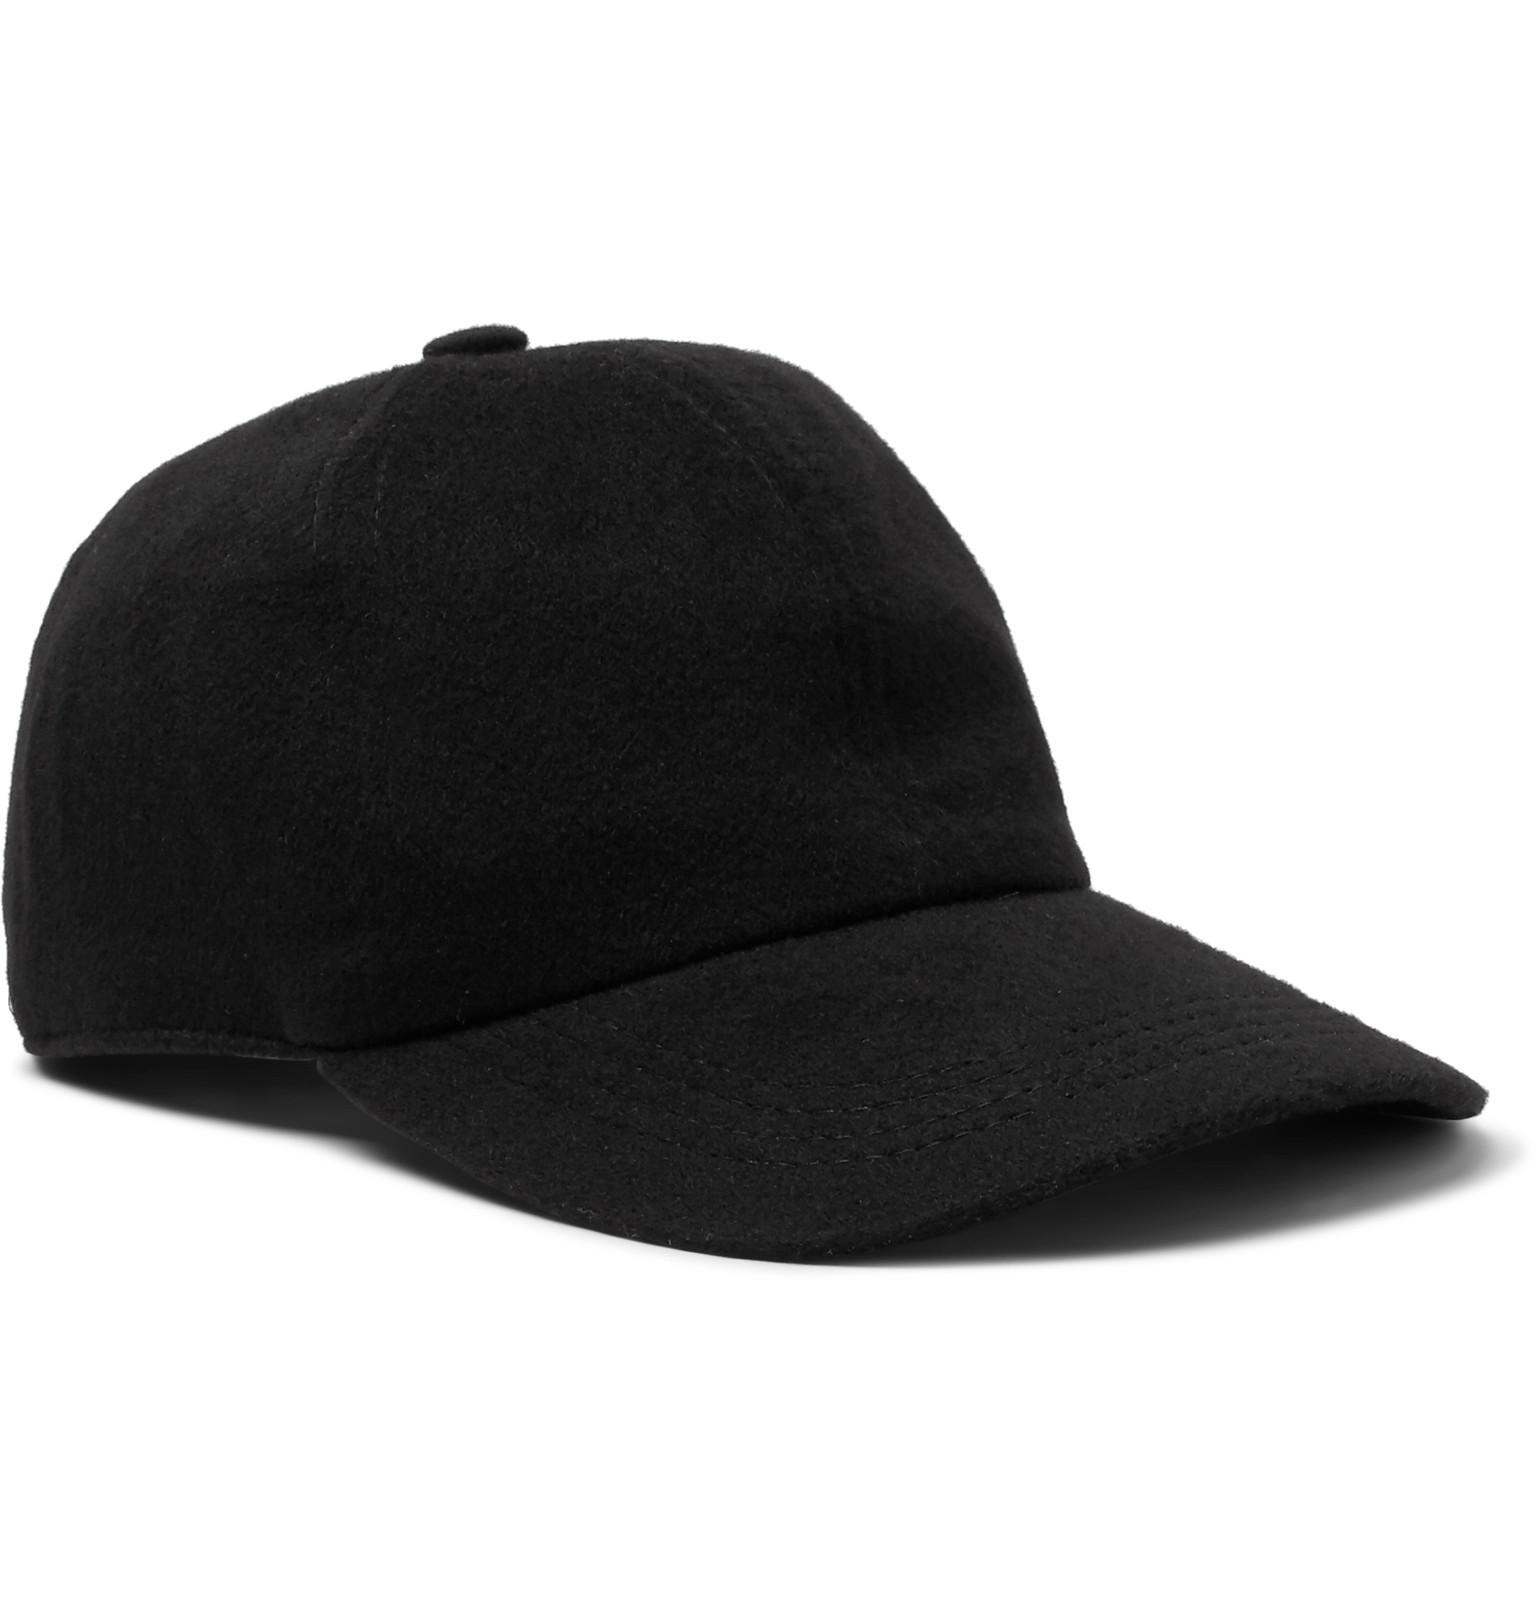 Rimini Cashmere Baseball Cap Lock & Co Hatters lxxmXHAt